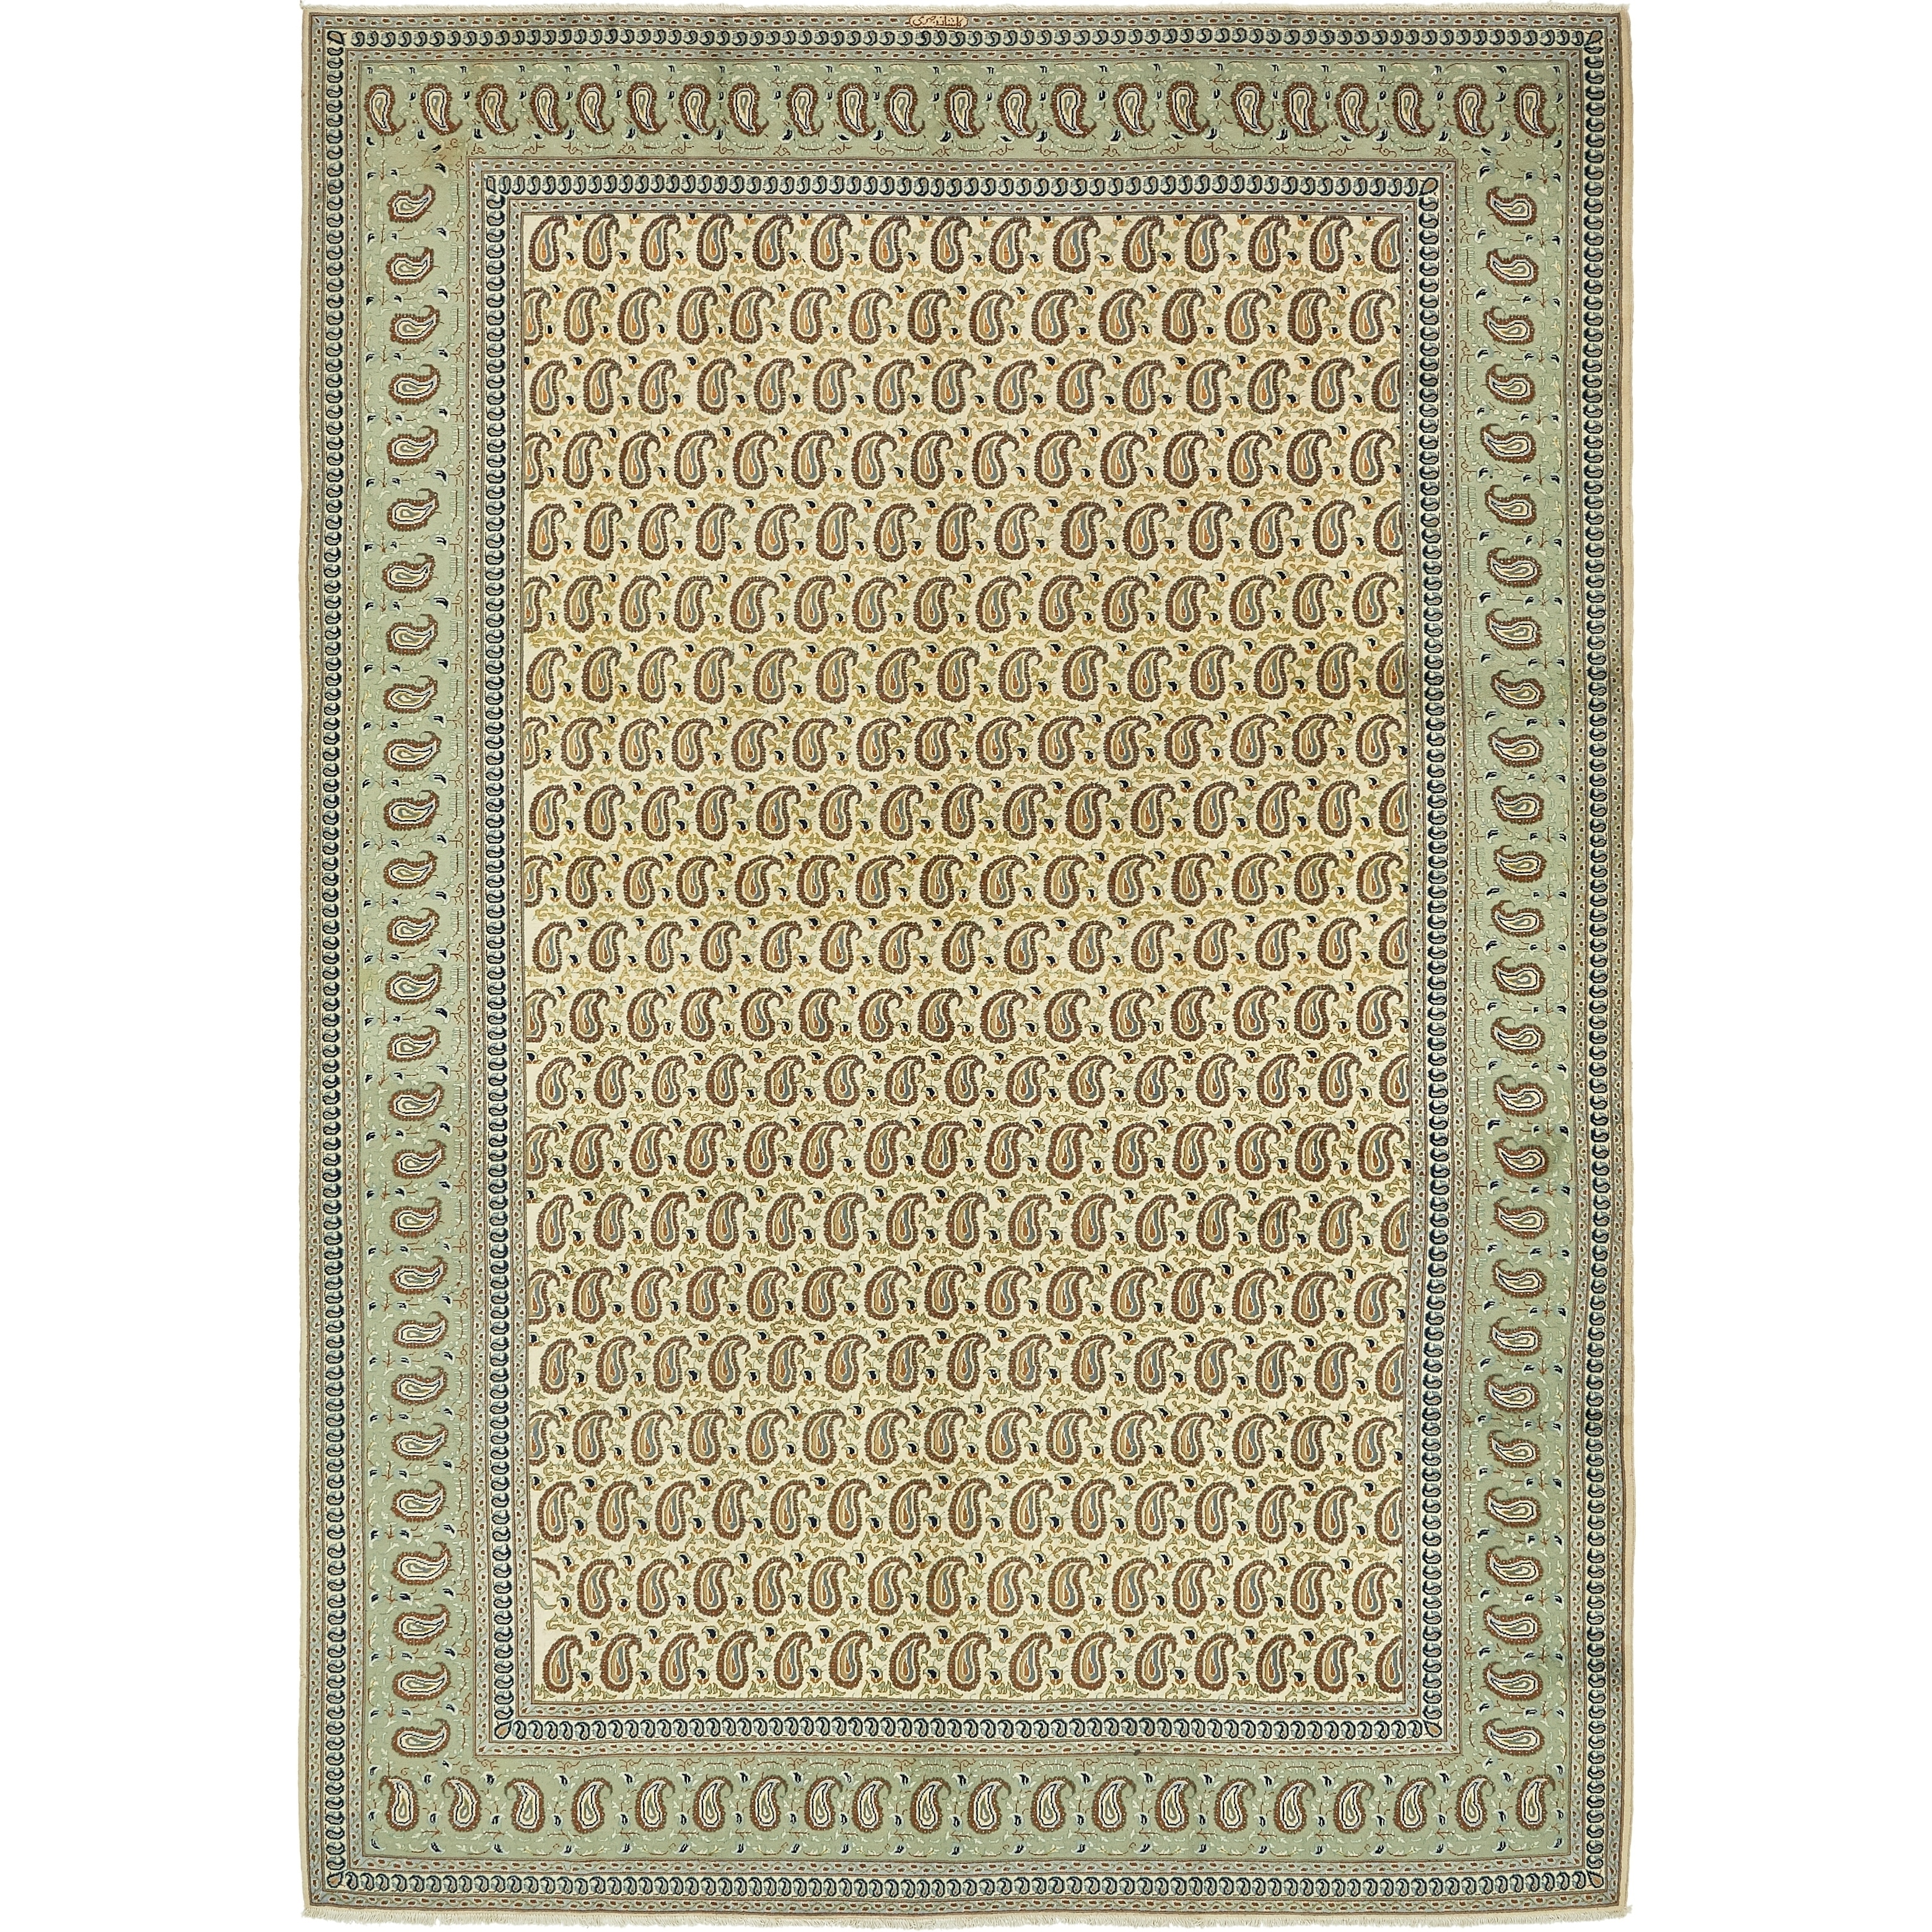 Hand Knotted Kashan Semi Antique Wool Area Rug - 8 5 x 12 4 (Ivory - 8 5 x 12 4)